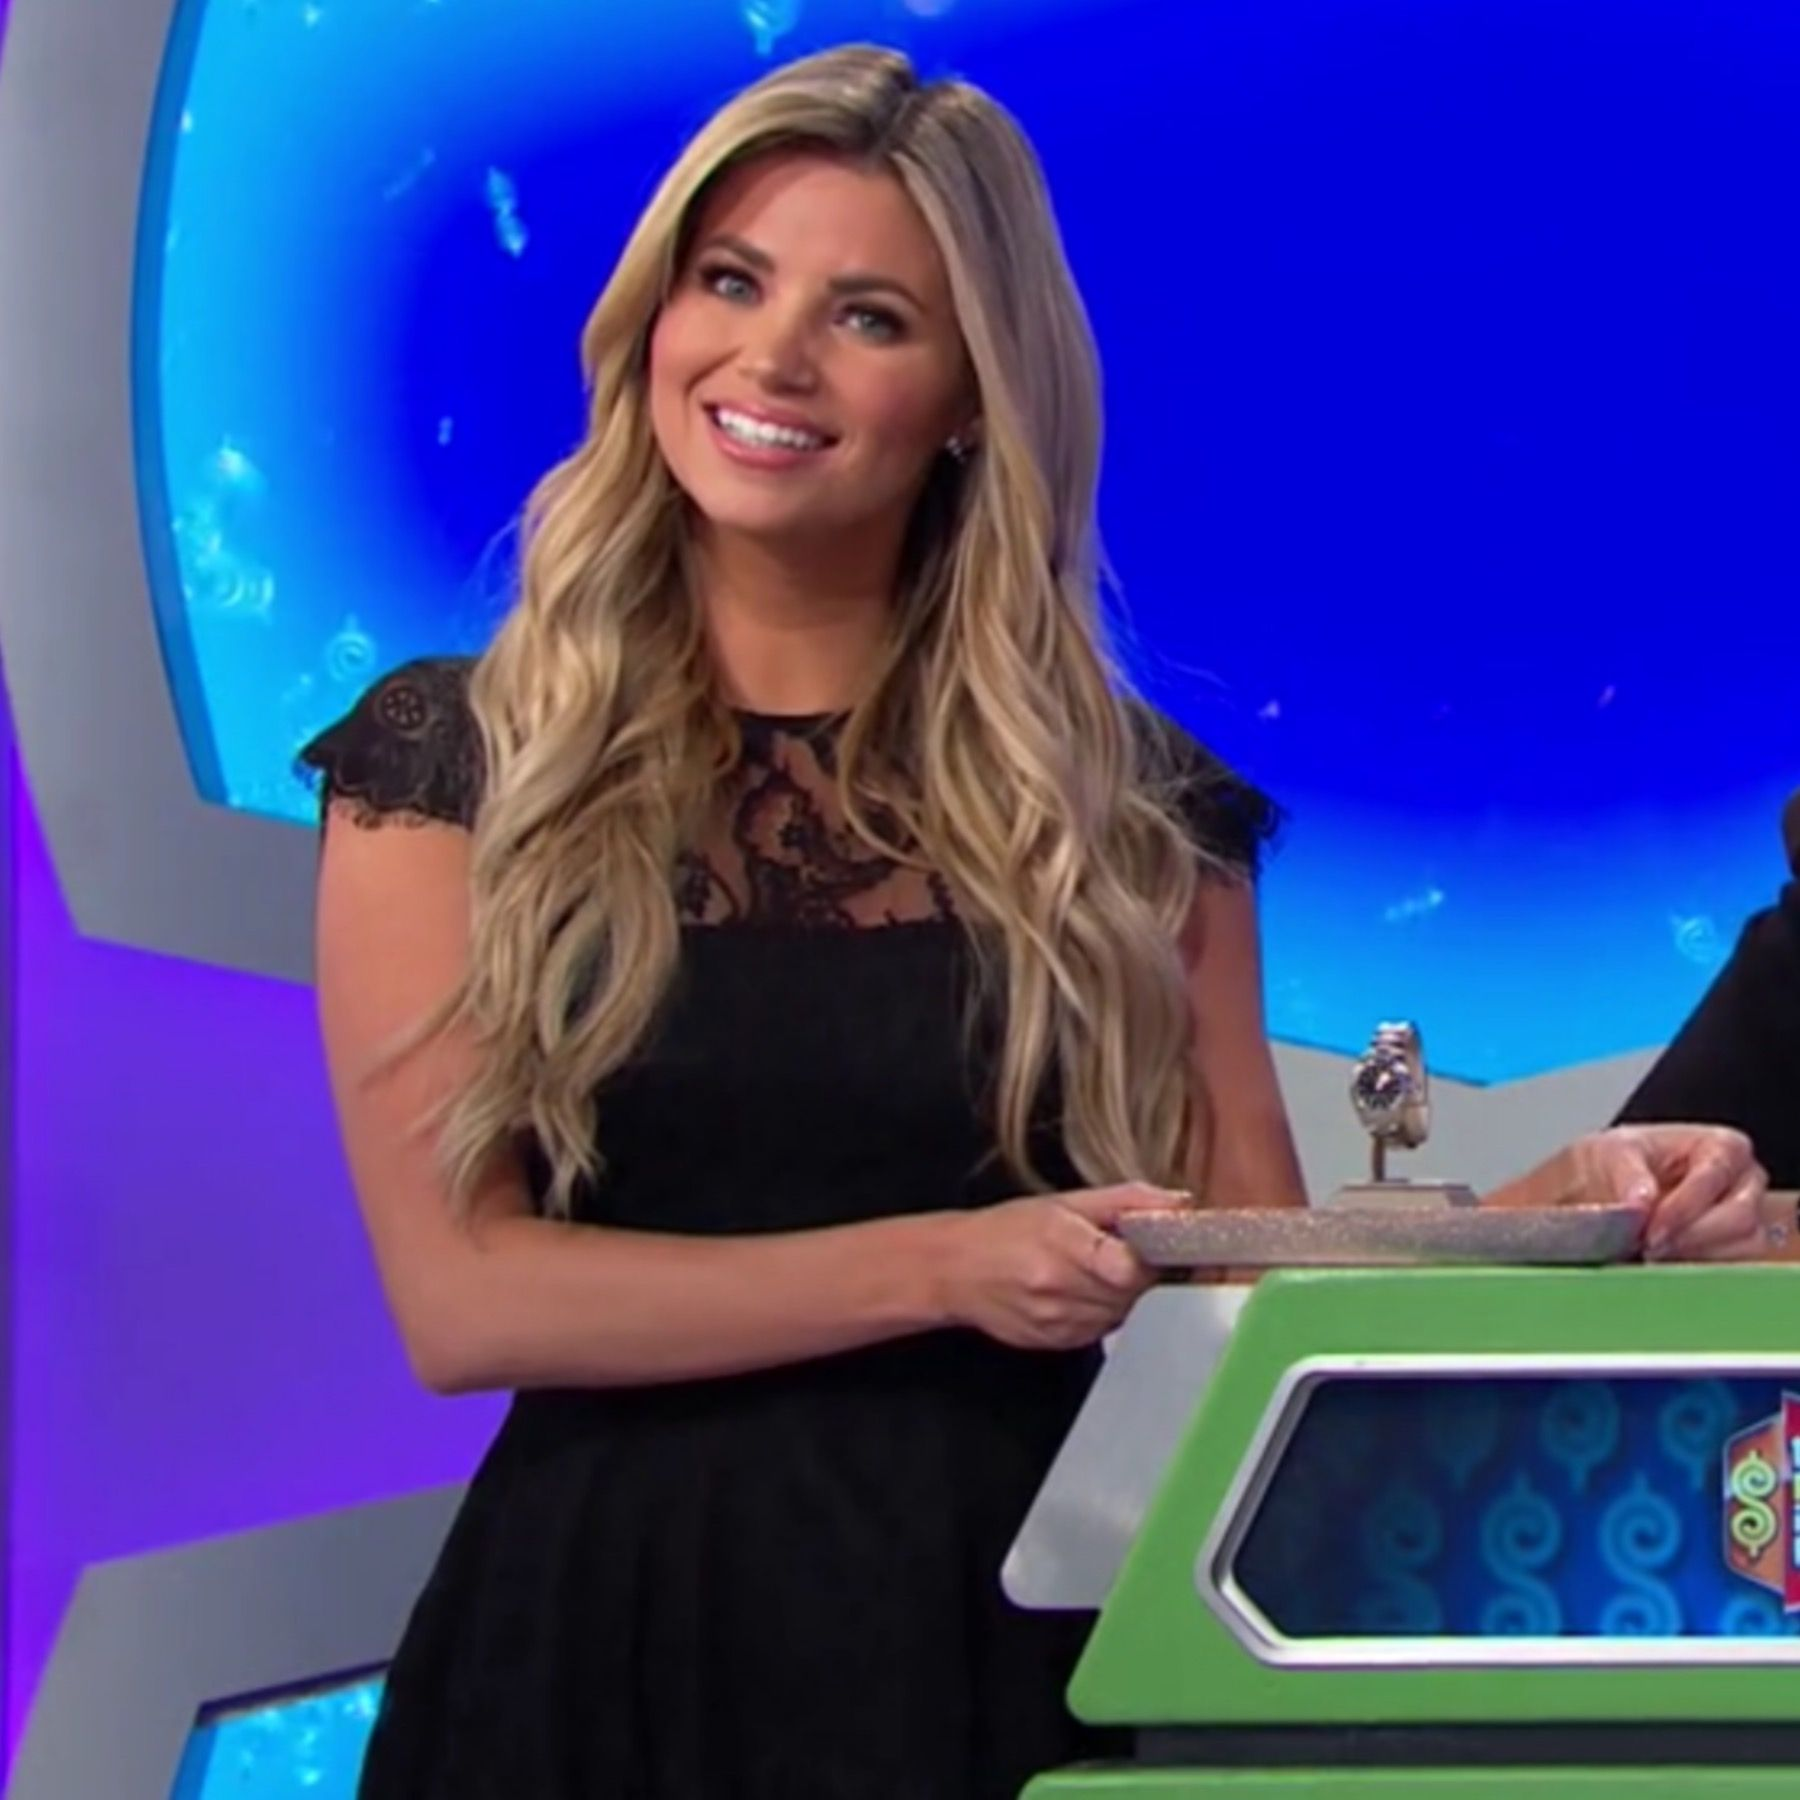 Amber Lancaster From The Price Is Right amber lancaster - the price is right (2/20/2019